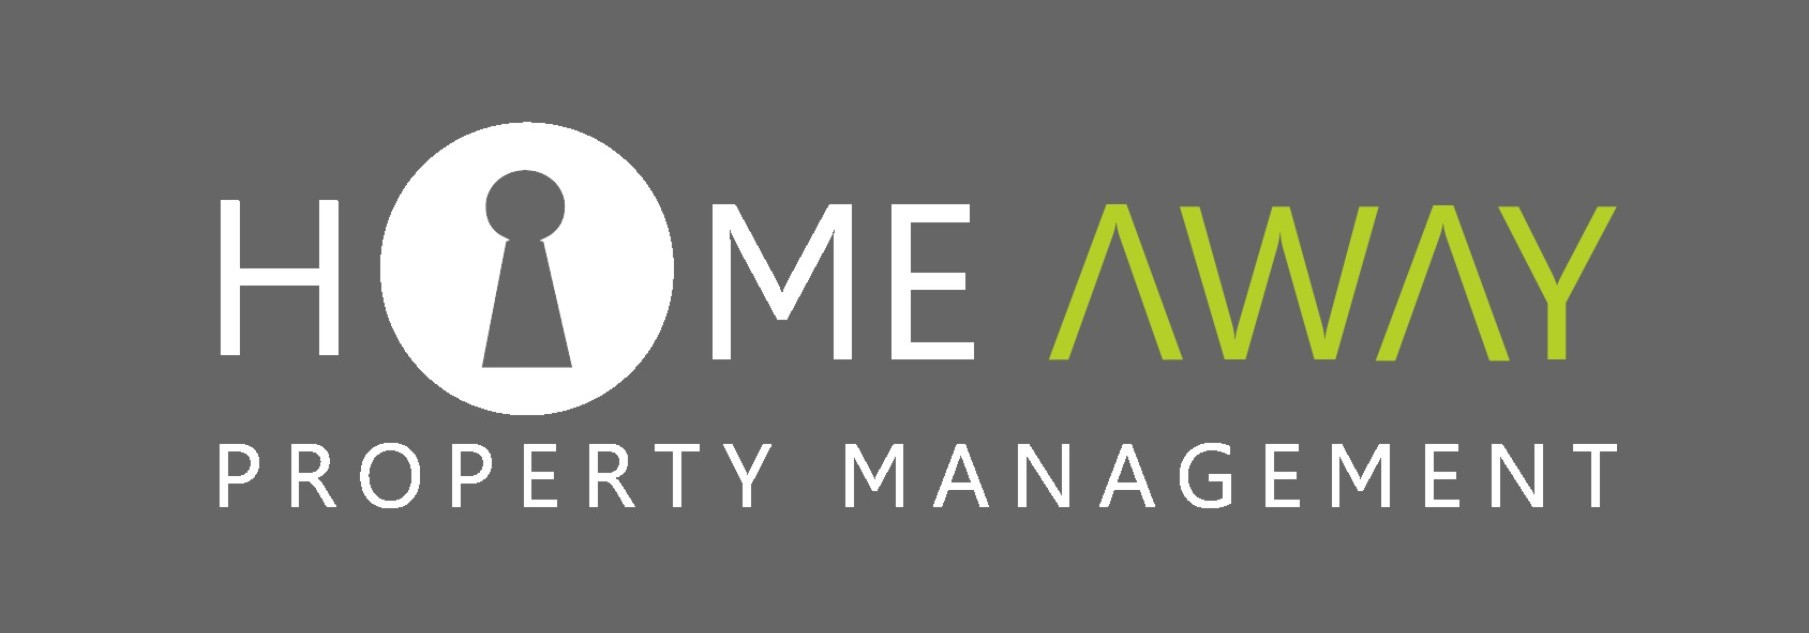 Homeaway Property Management